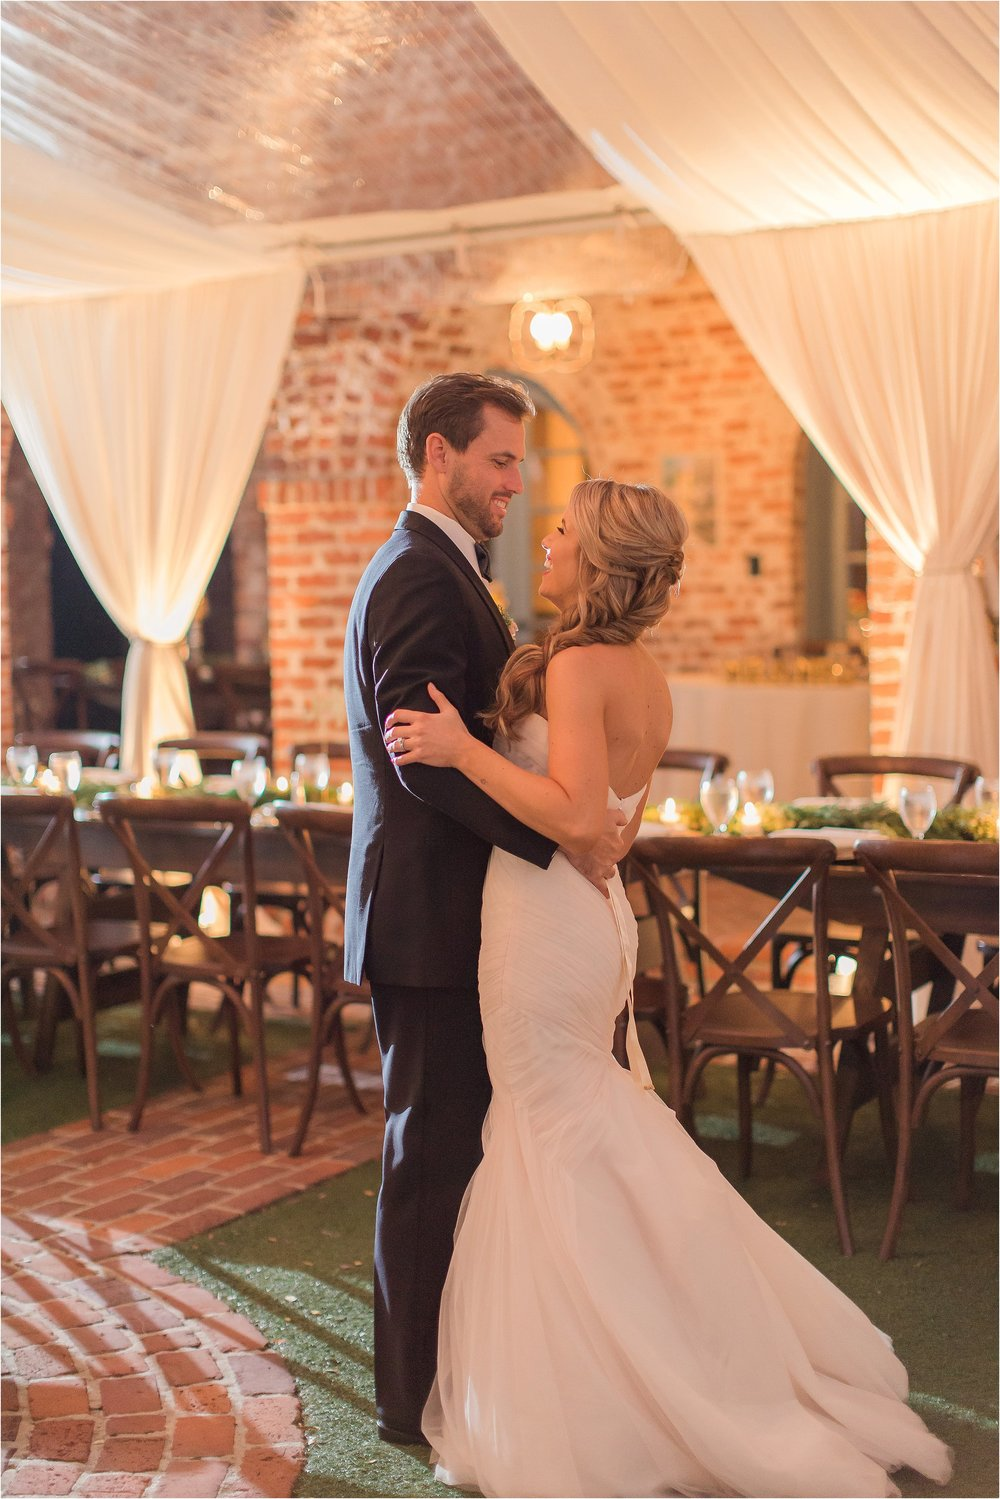 Casa_Feliz_Alfond_Inn_Winter_WeddingndhamGrandWedding_0101.jpg